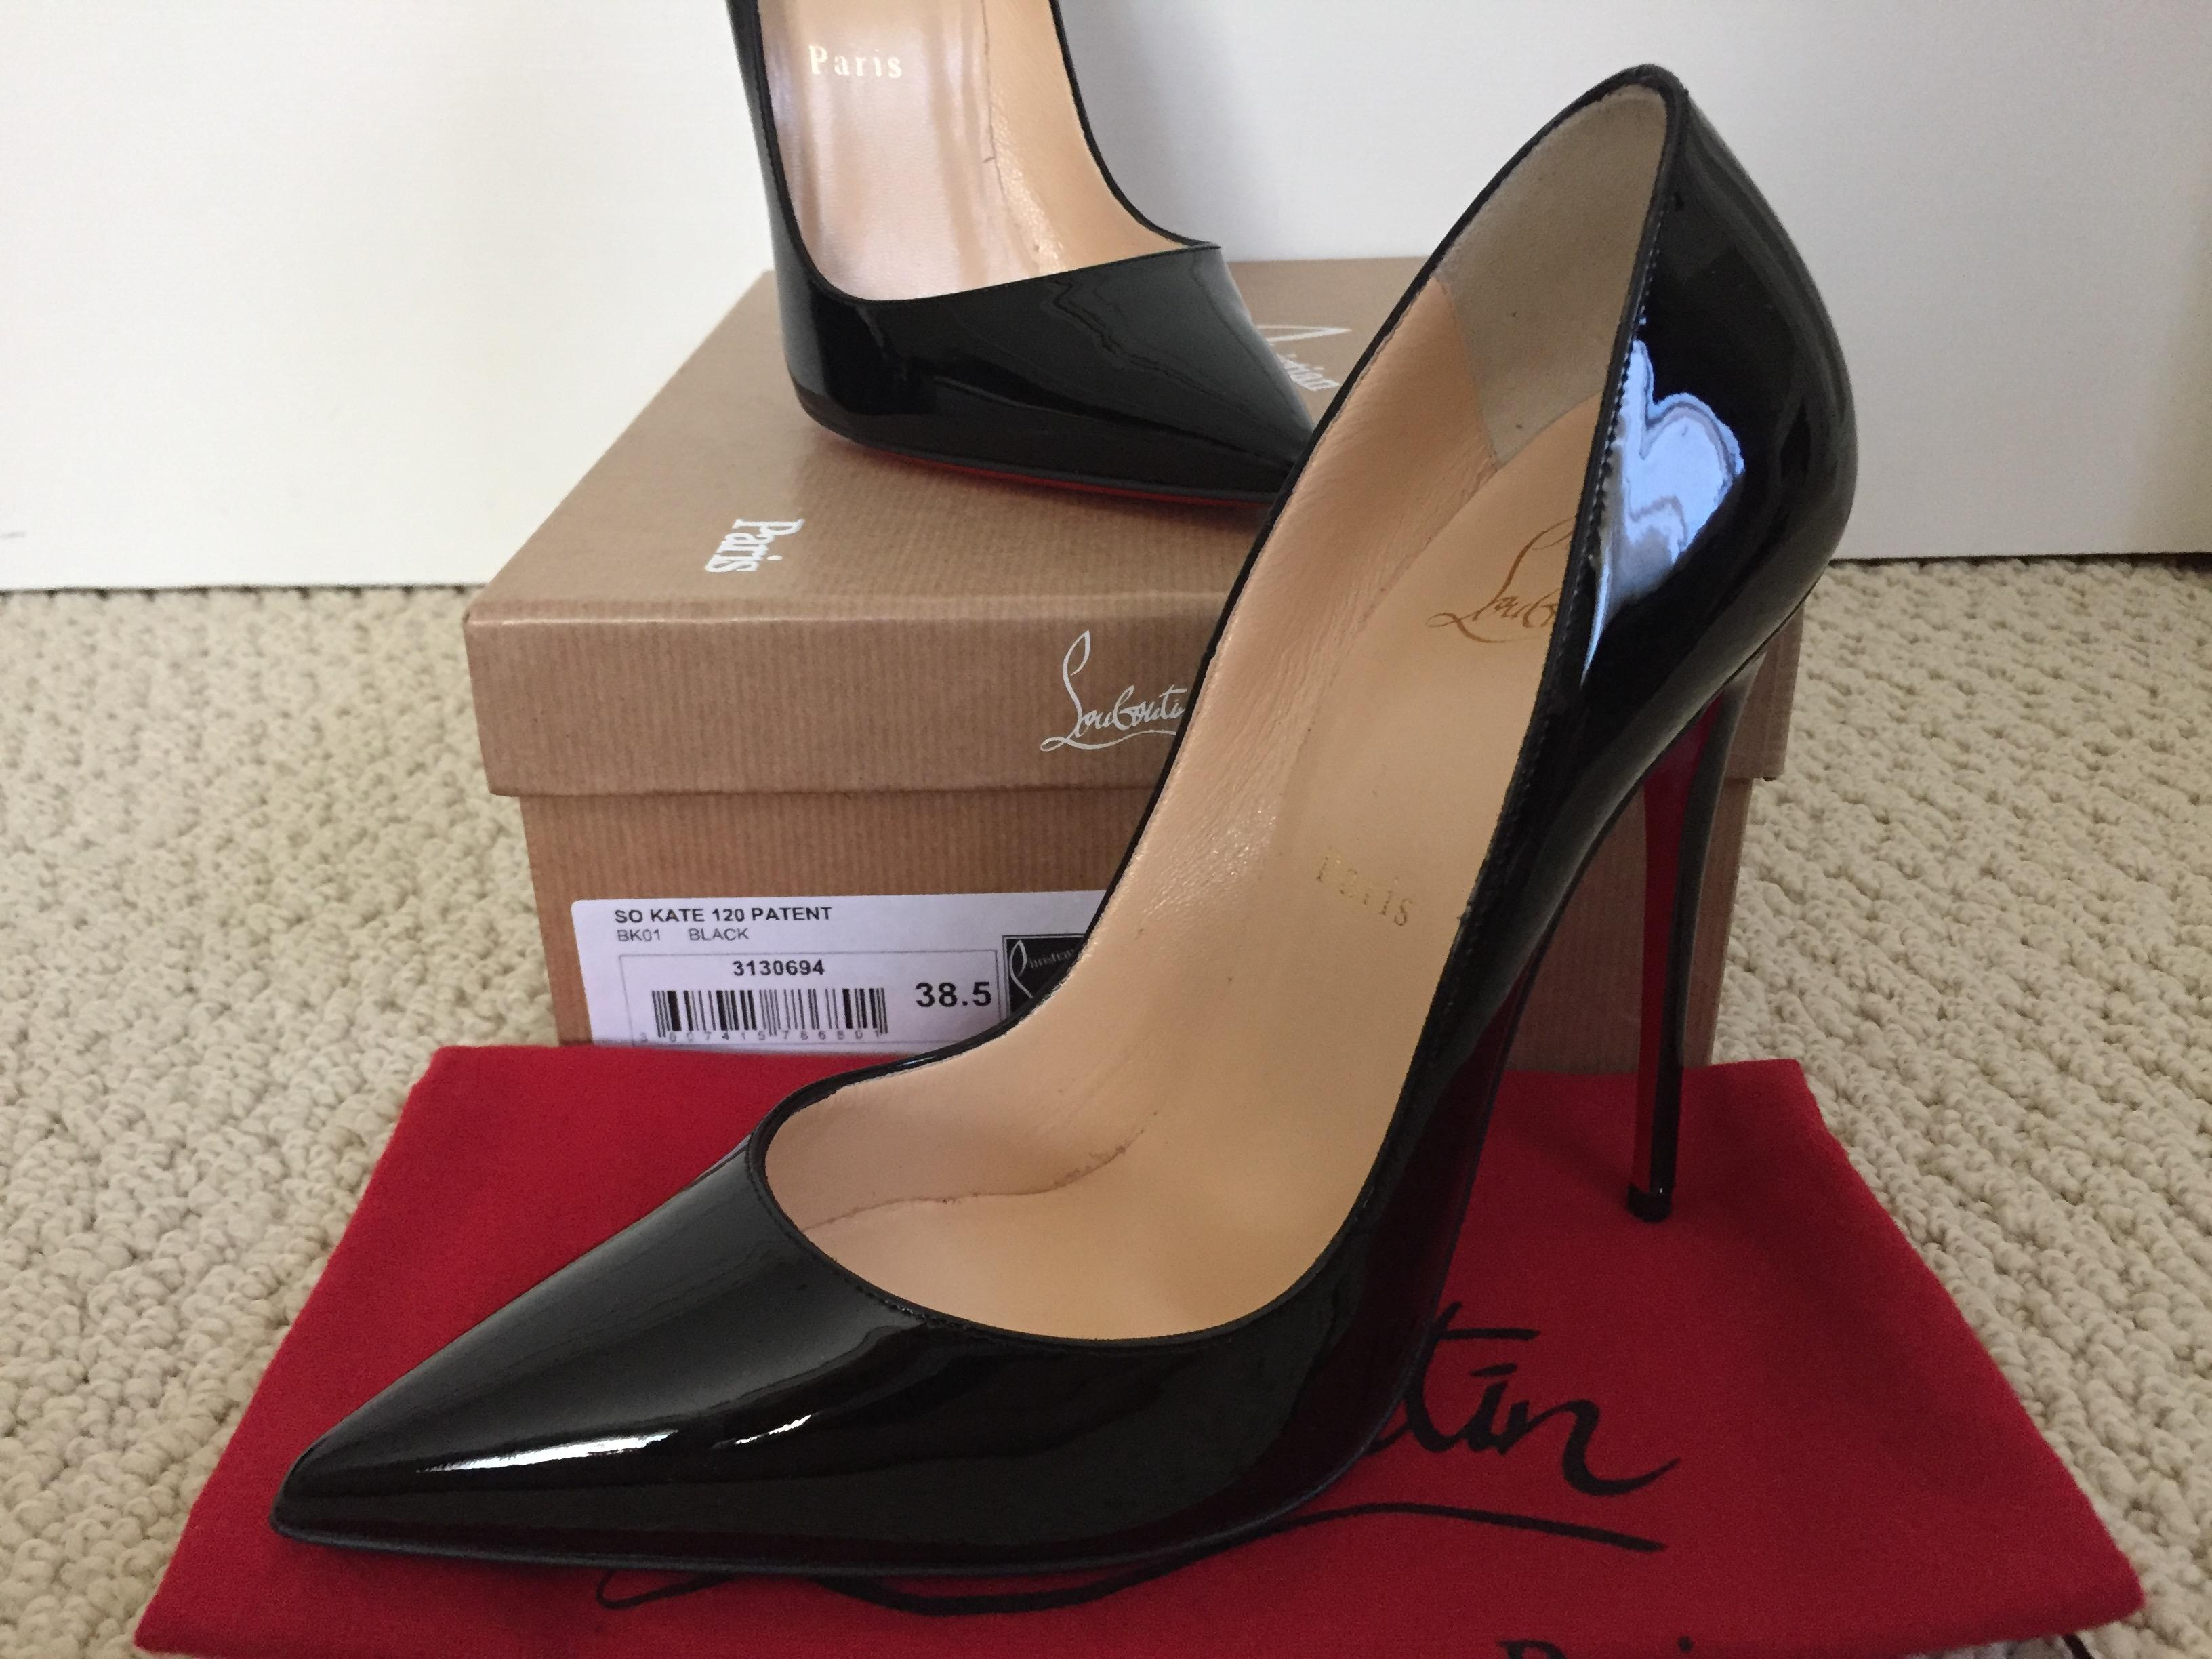 bc90daa173c5 ... Christian Louboutin Black So Kate Patent Leather Pointed Pumps Pumps  Pumps Size US 8.5 cd0745 ...